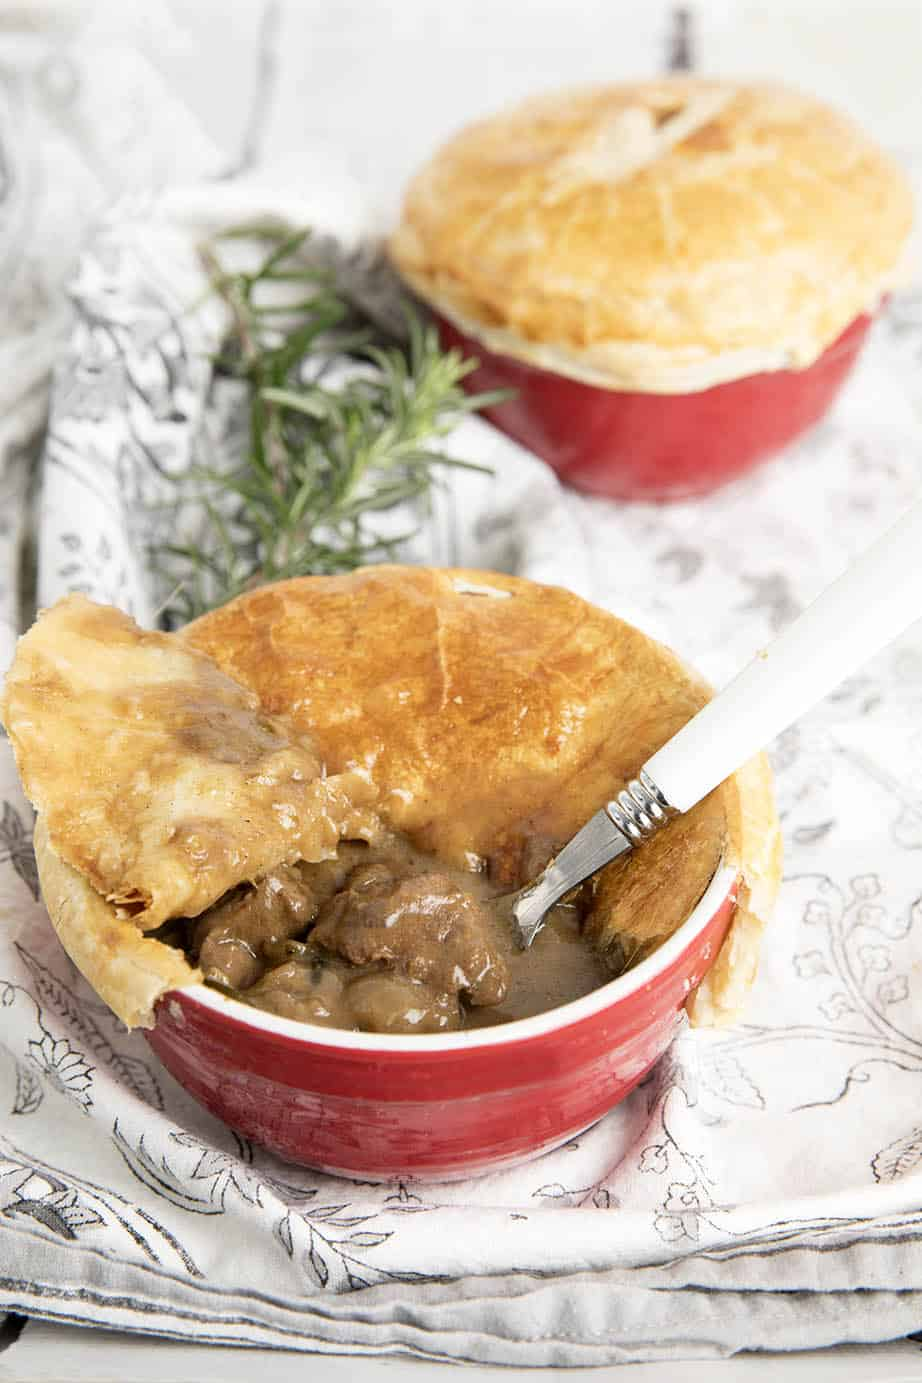 Two Peppercorn pot pies one with the pastry removed